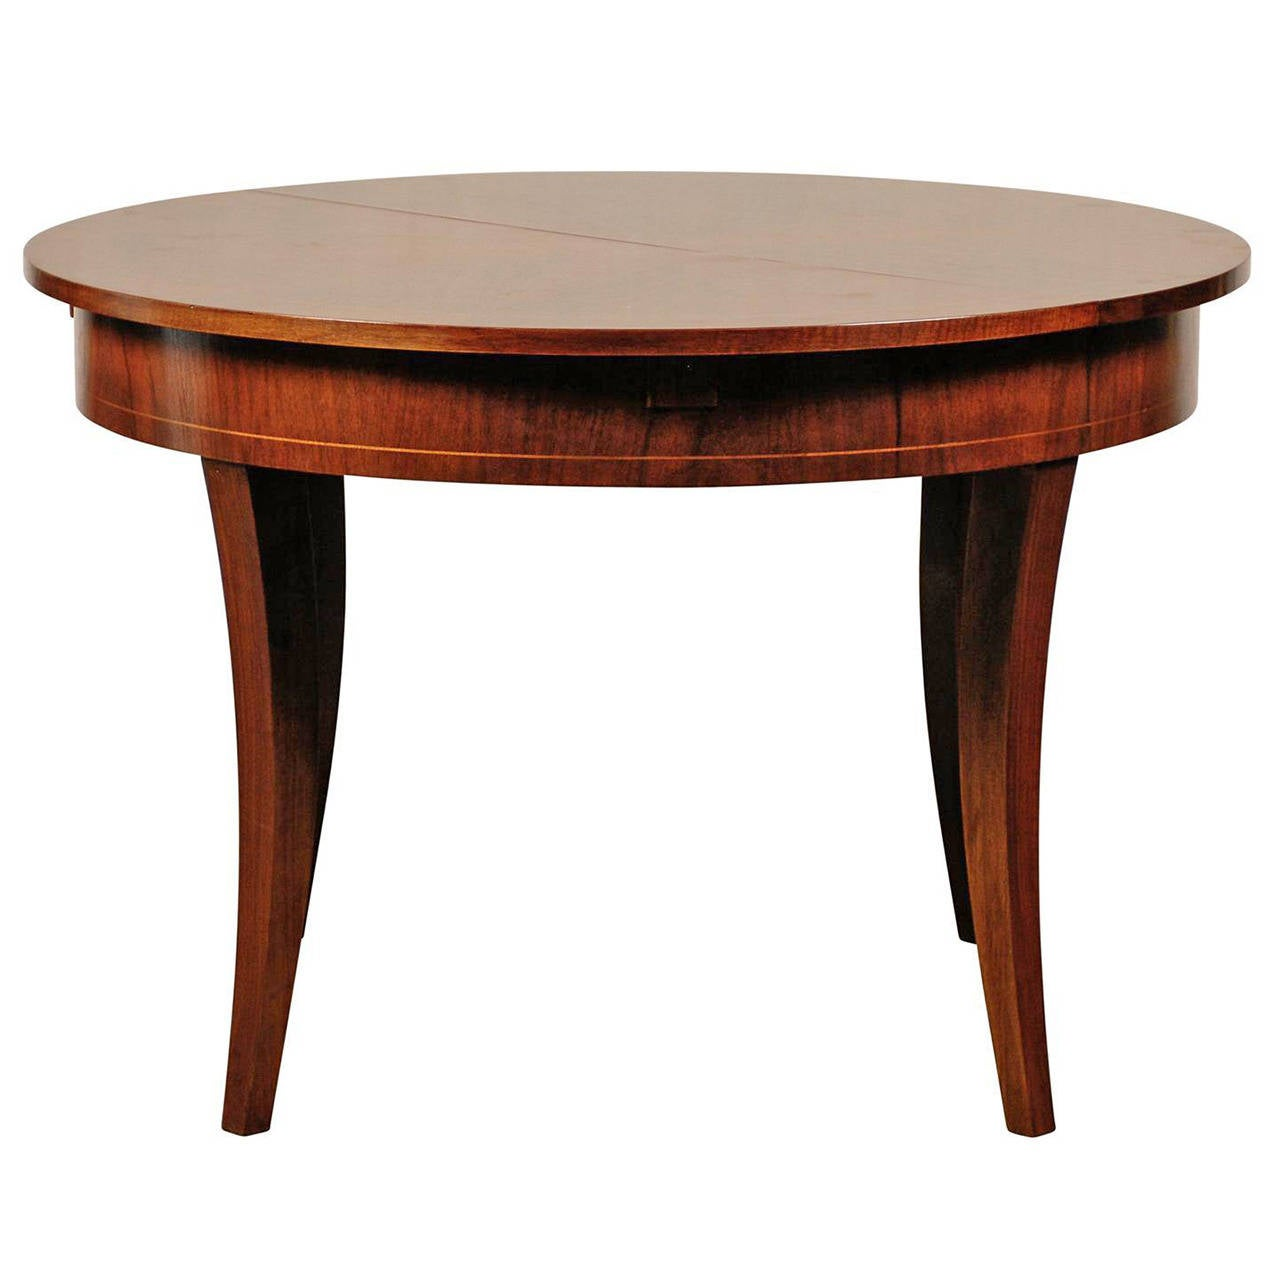 Round Extension Dining Table The Best Inspiration for  : 2197122l from samtog.info size 1280 x 1280 jpeg 75kB